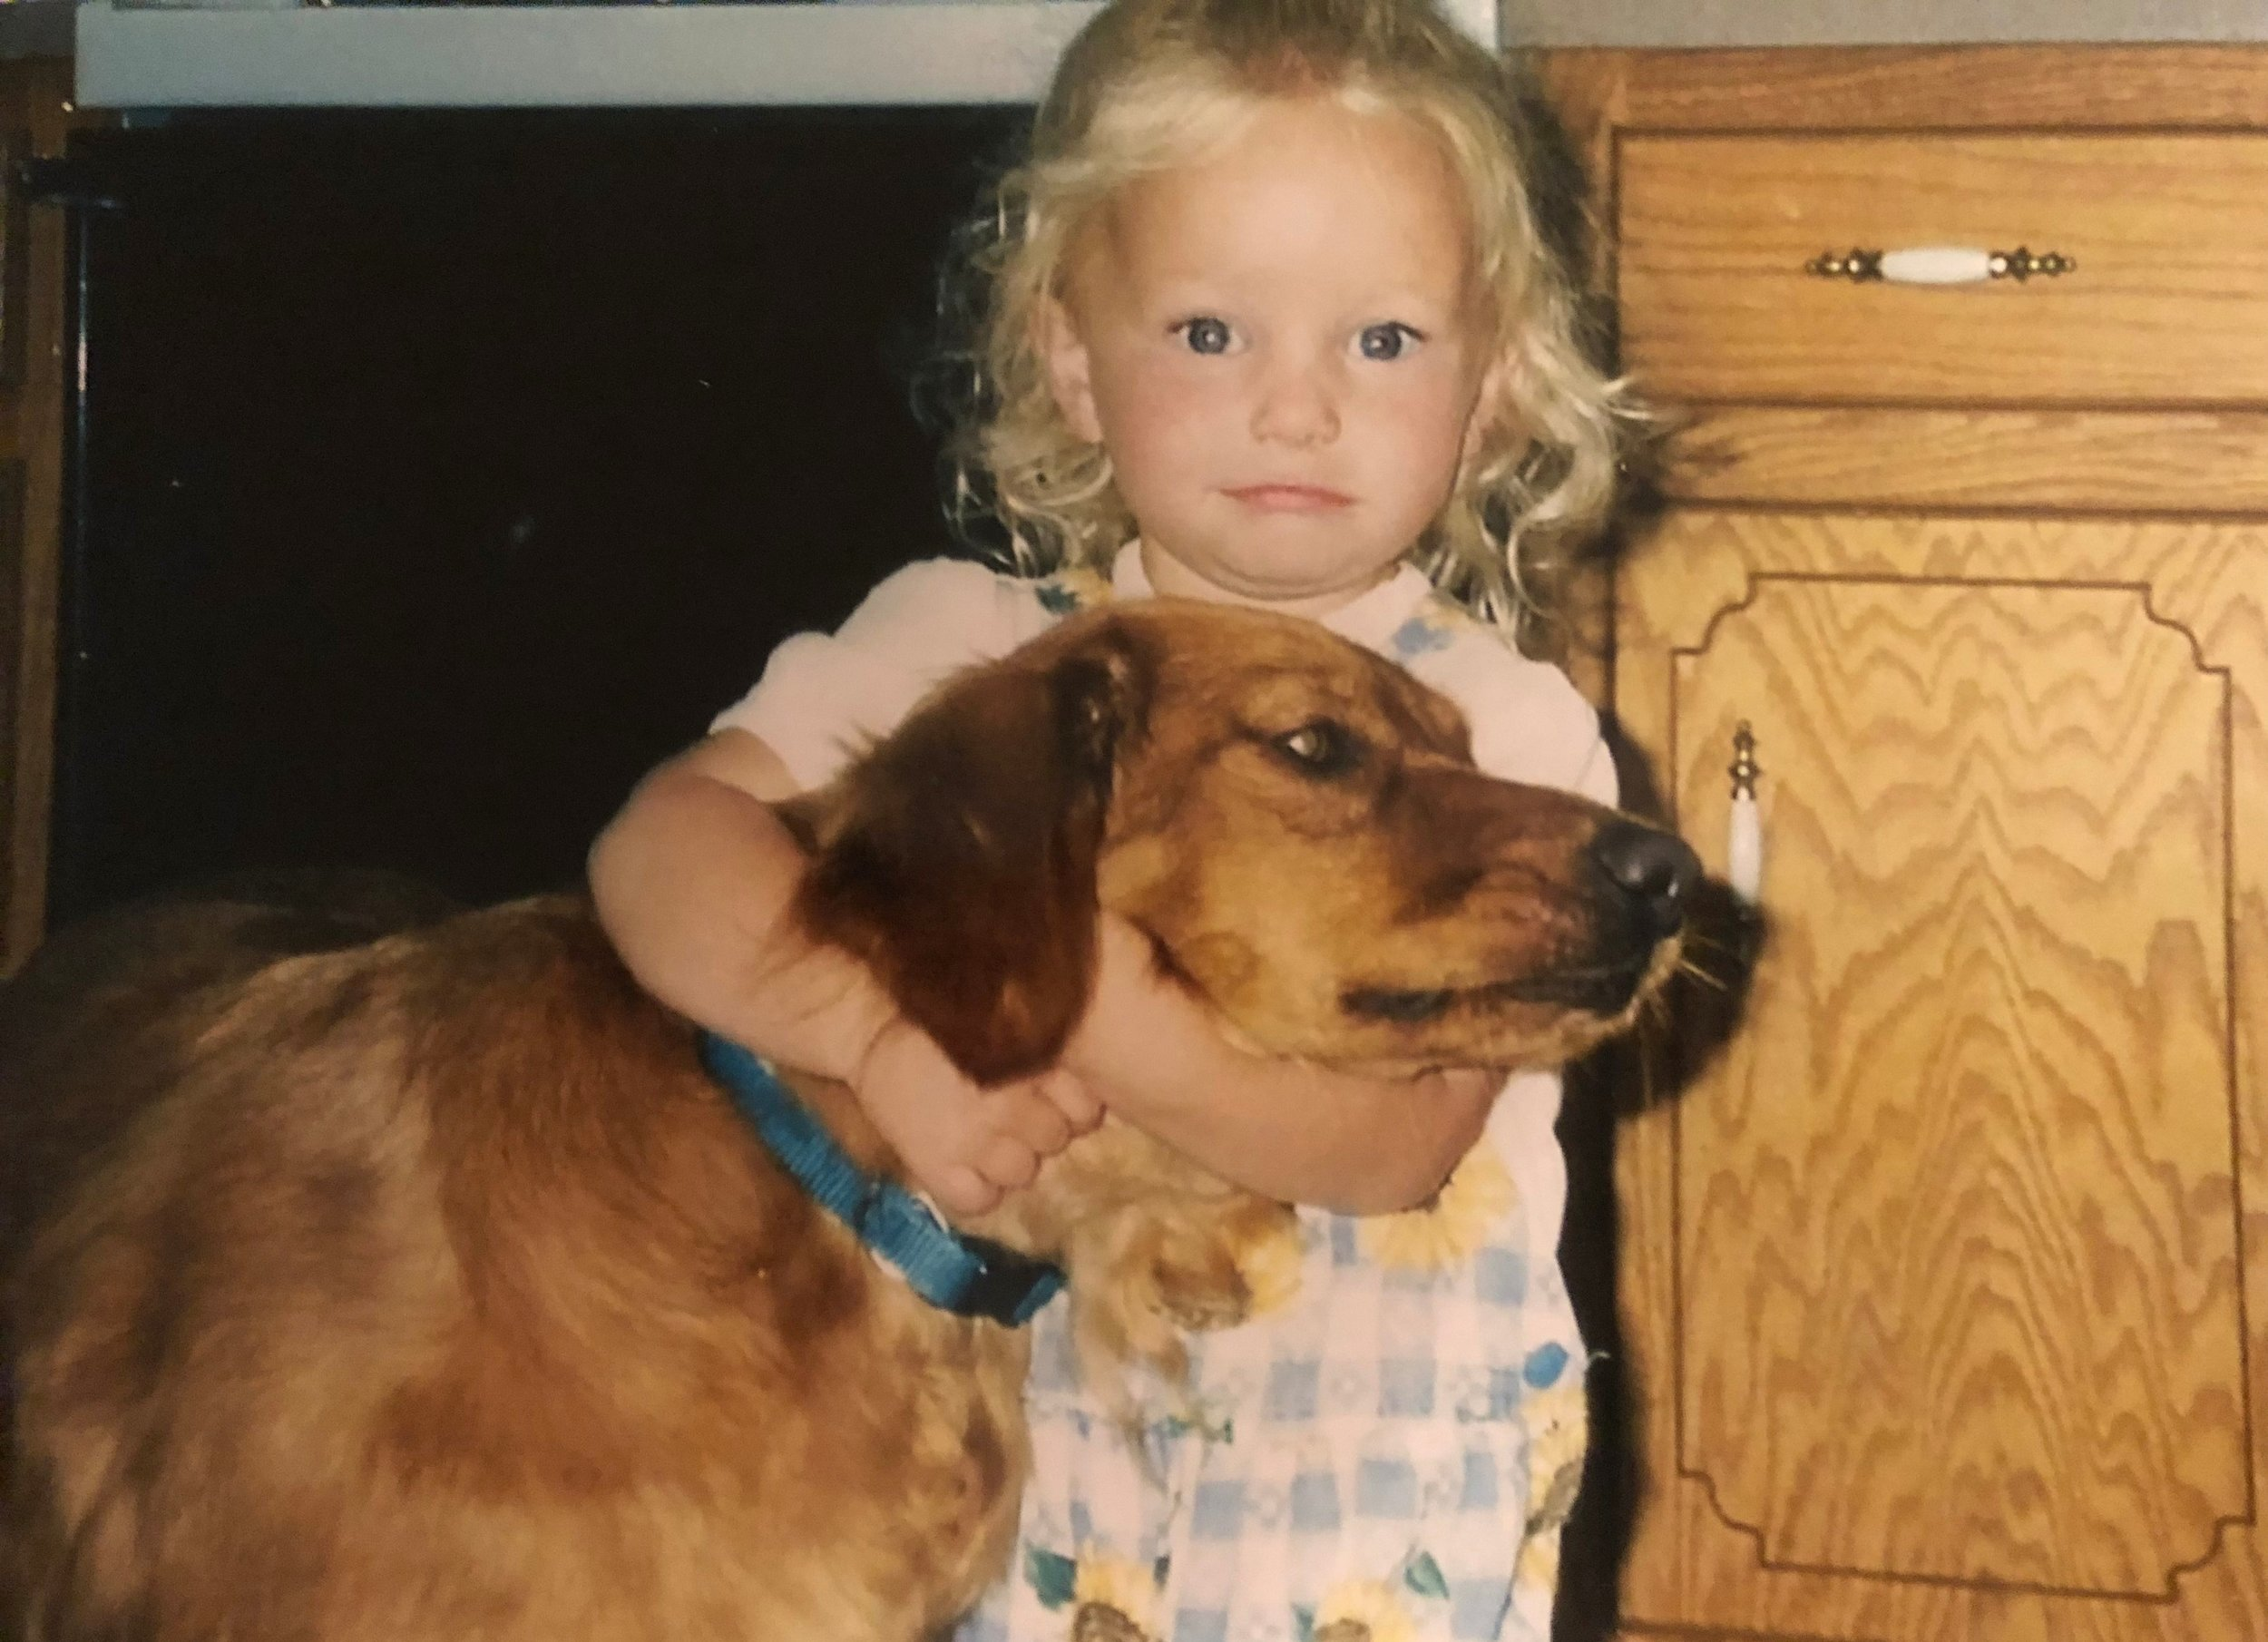 Me being an aggressive dog lover since day one